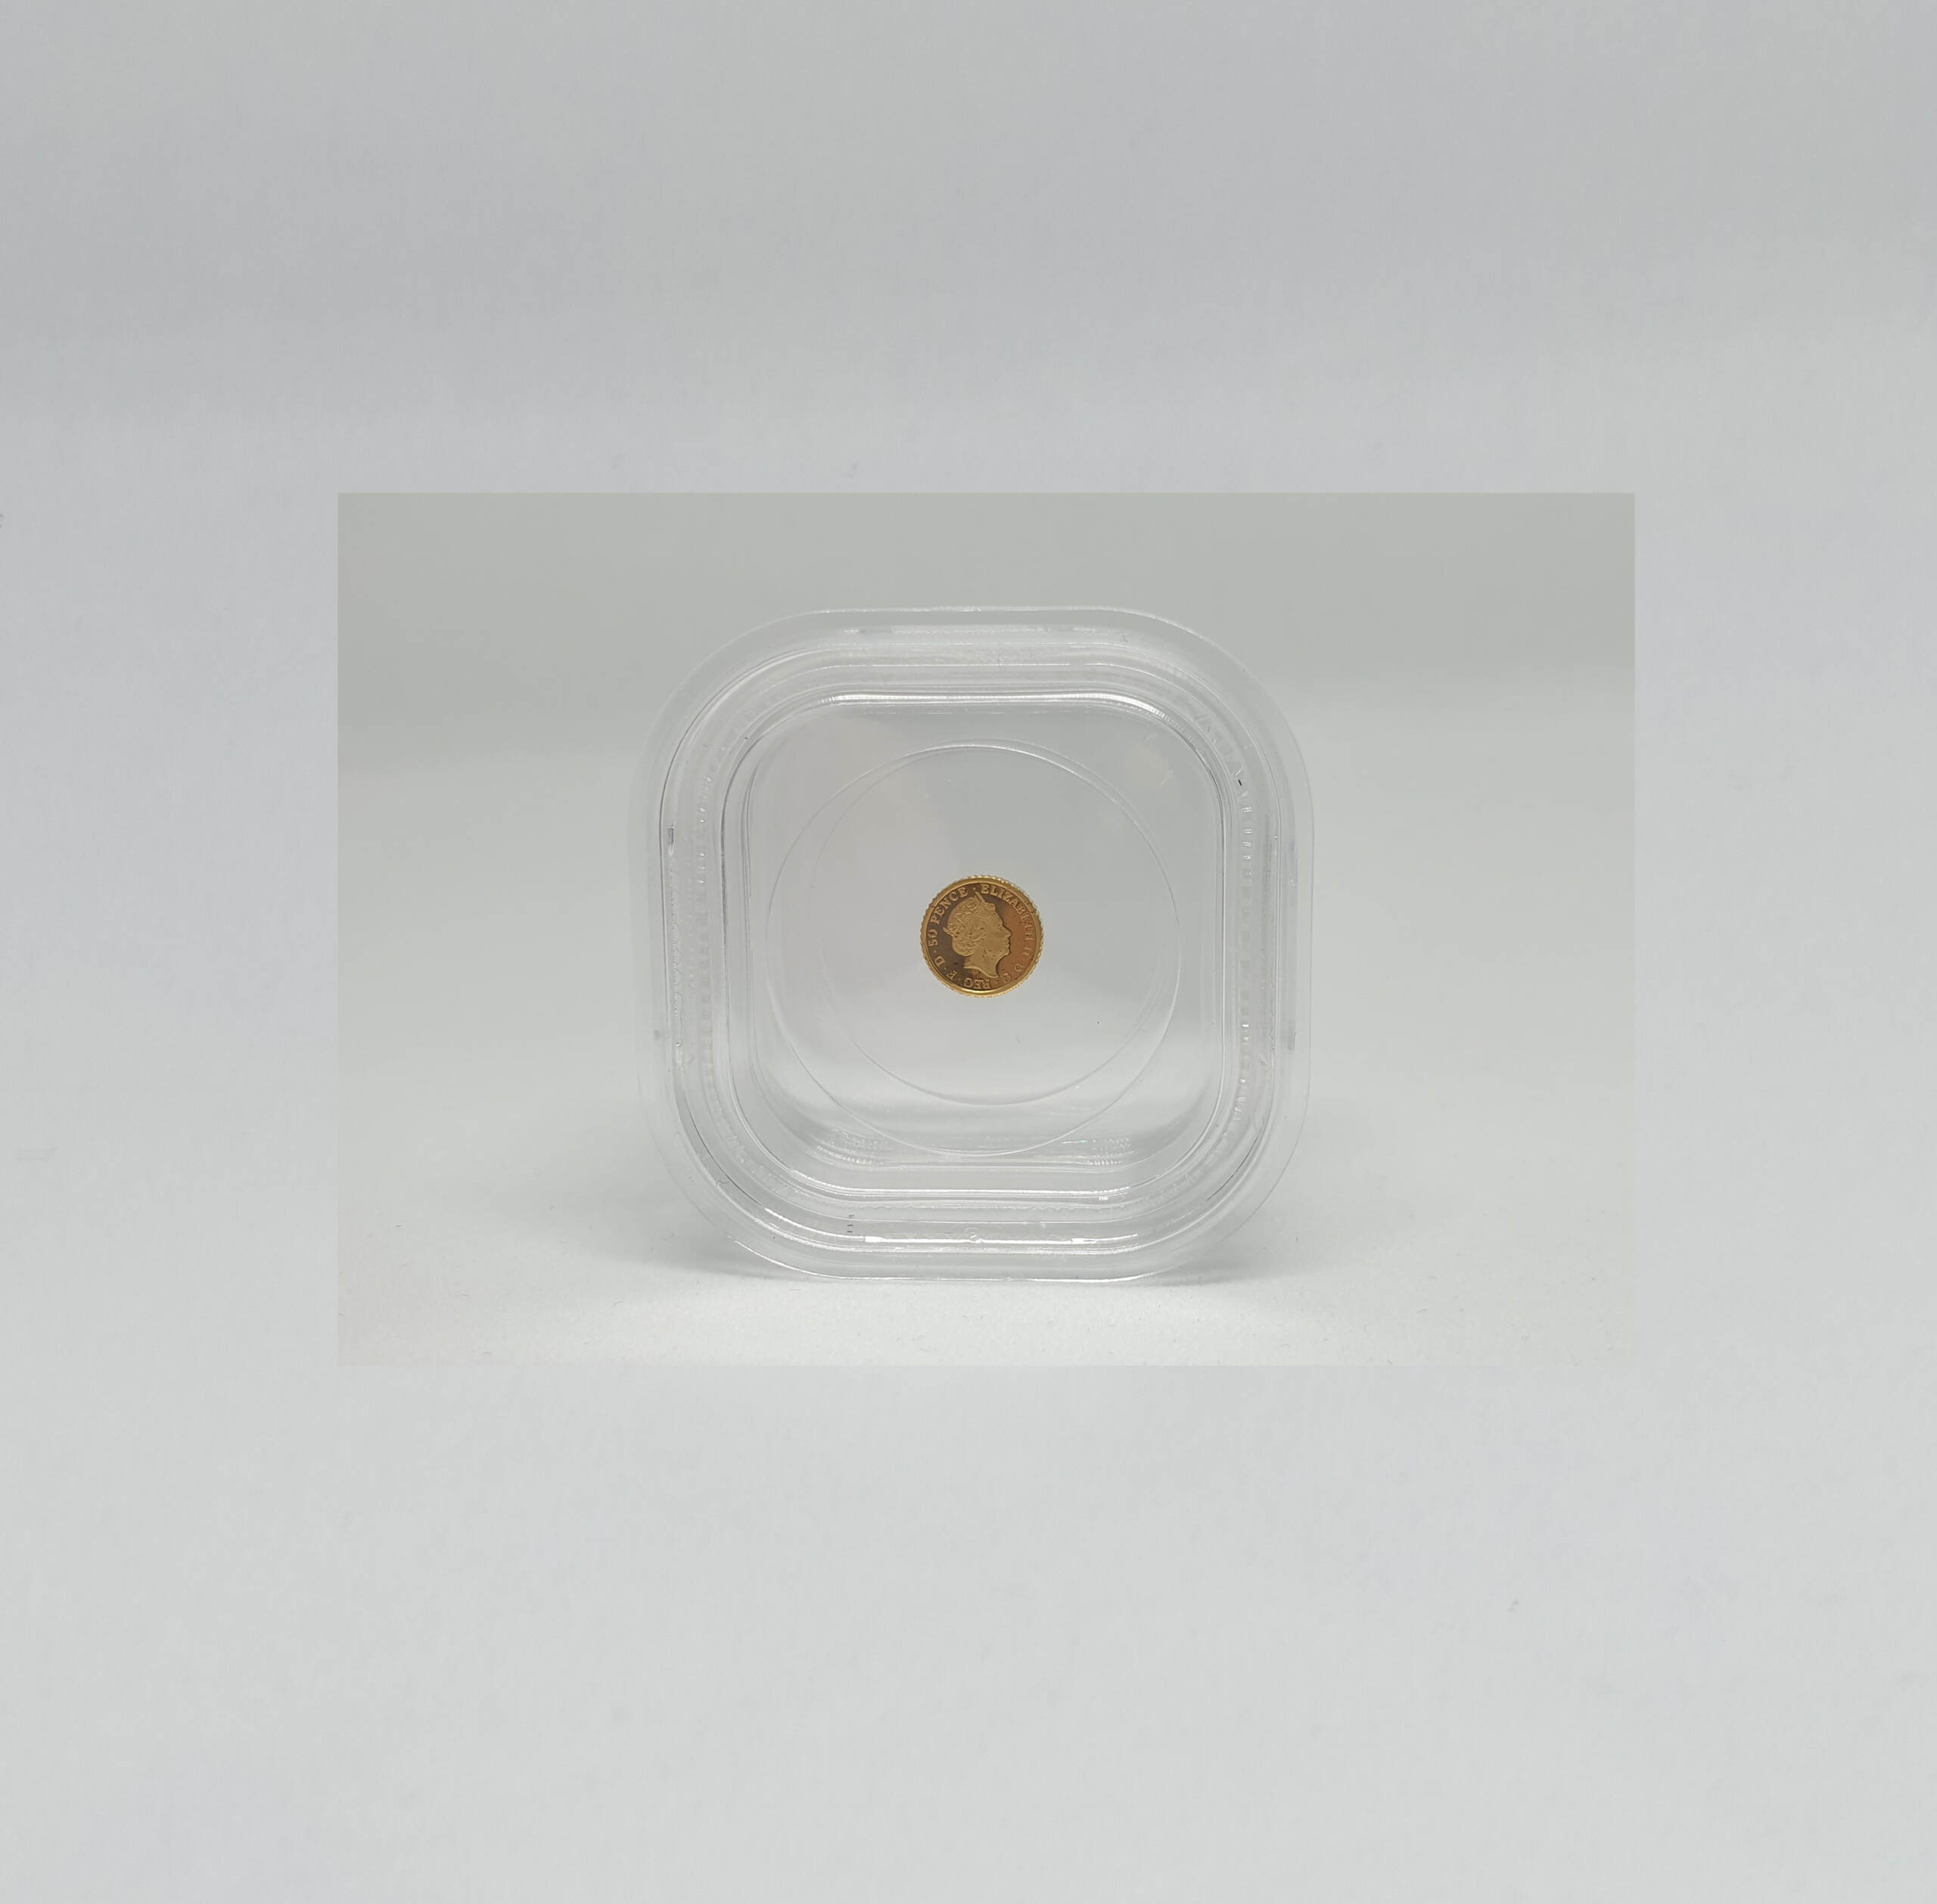 Tiny Gold Coin Collectible in Membrane Storage Box